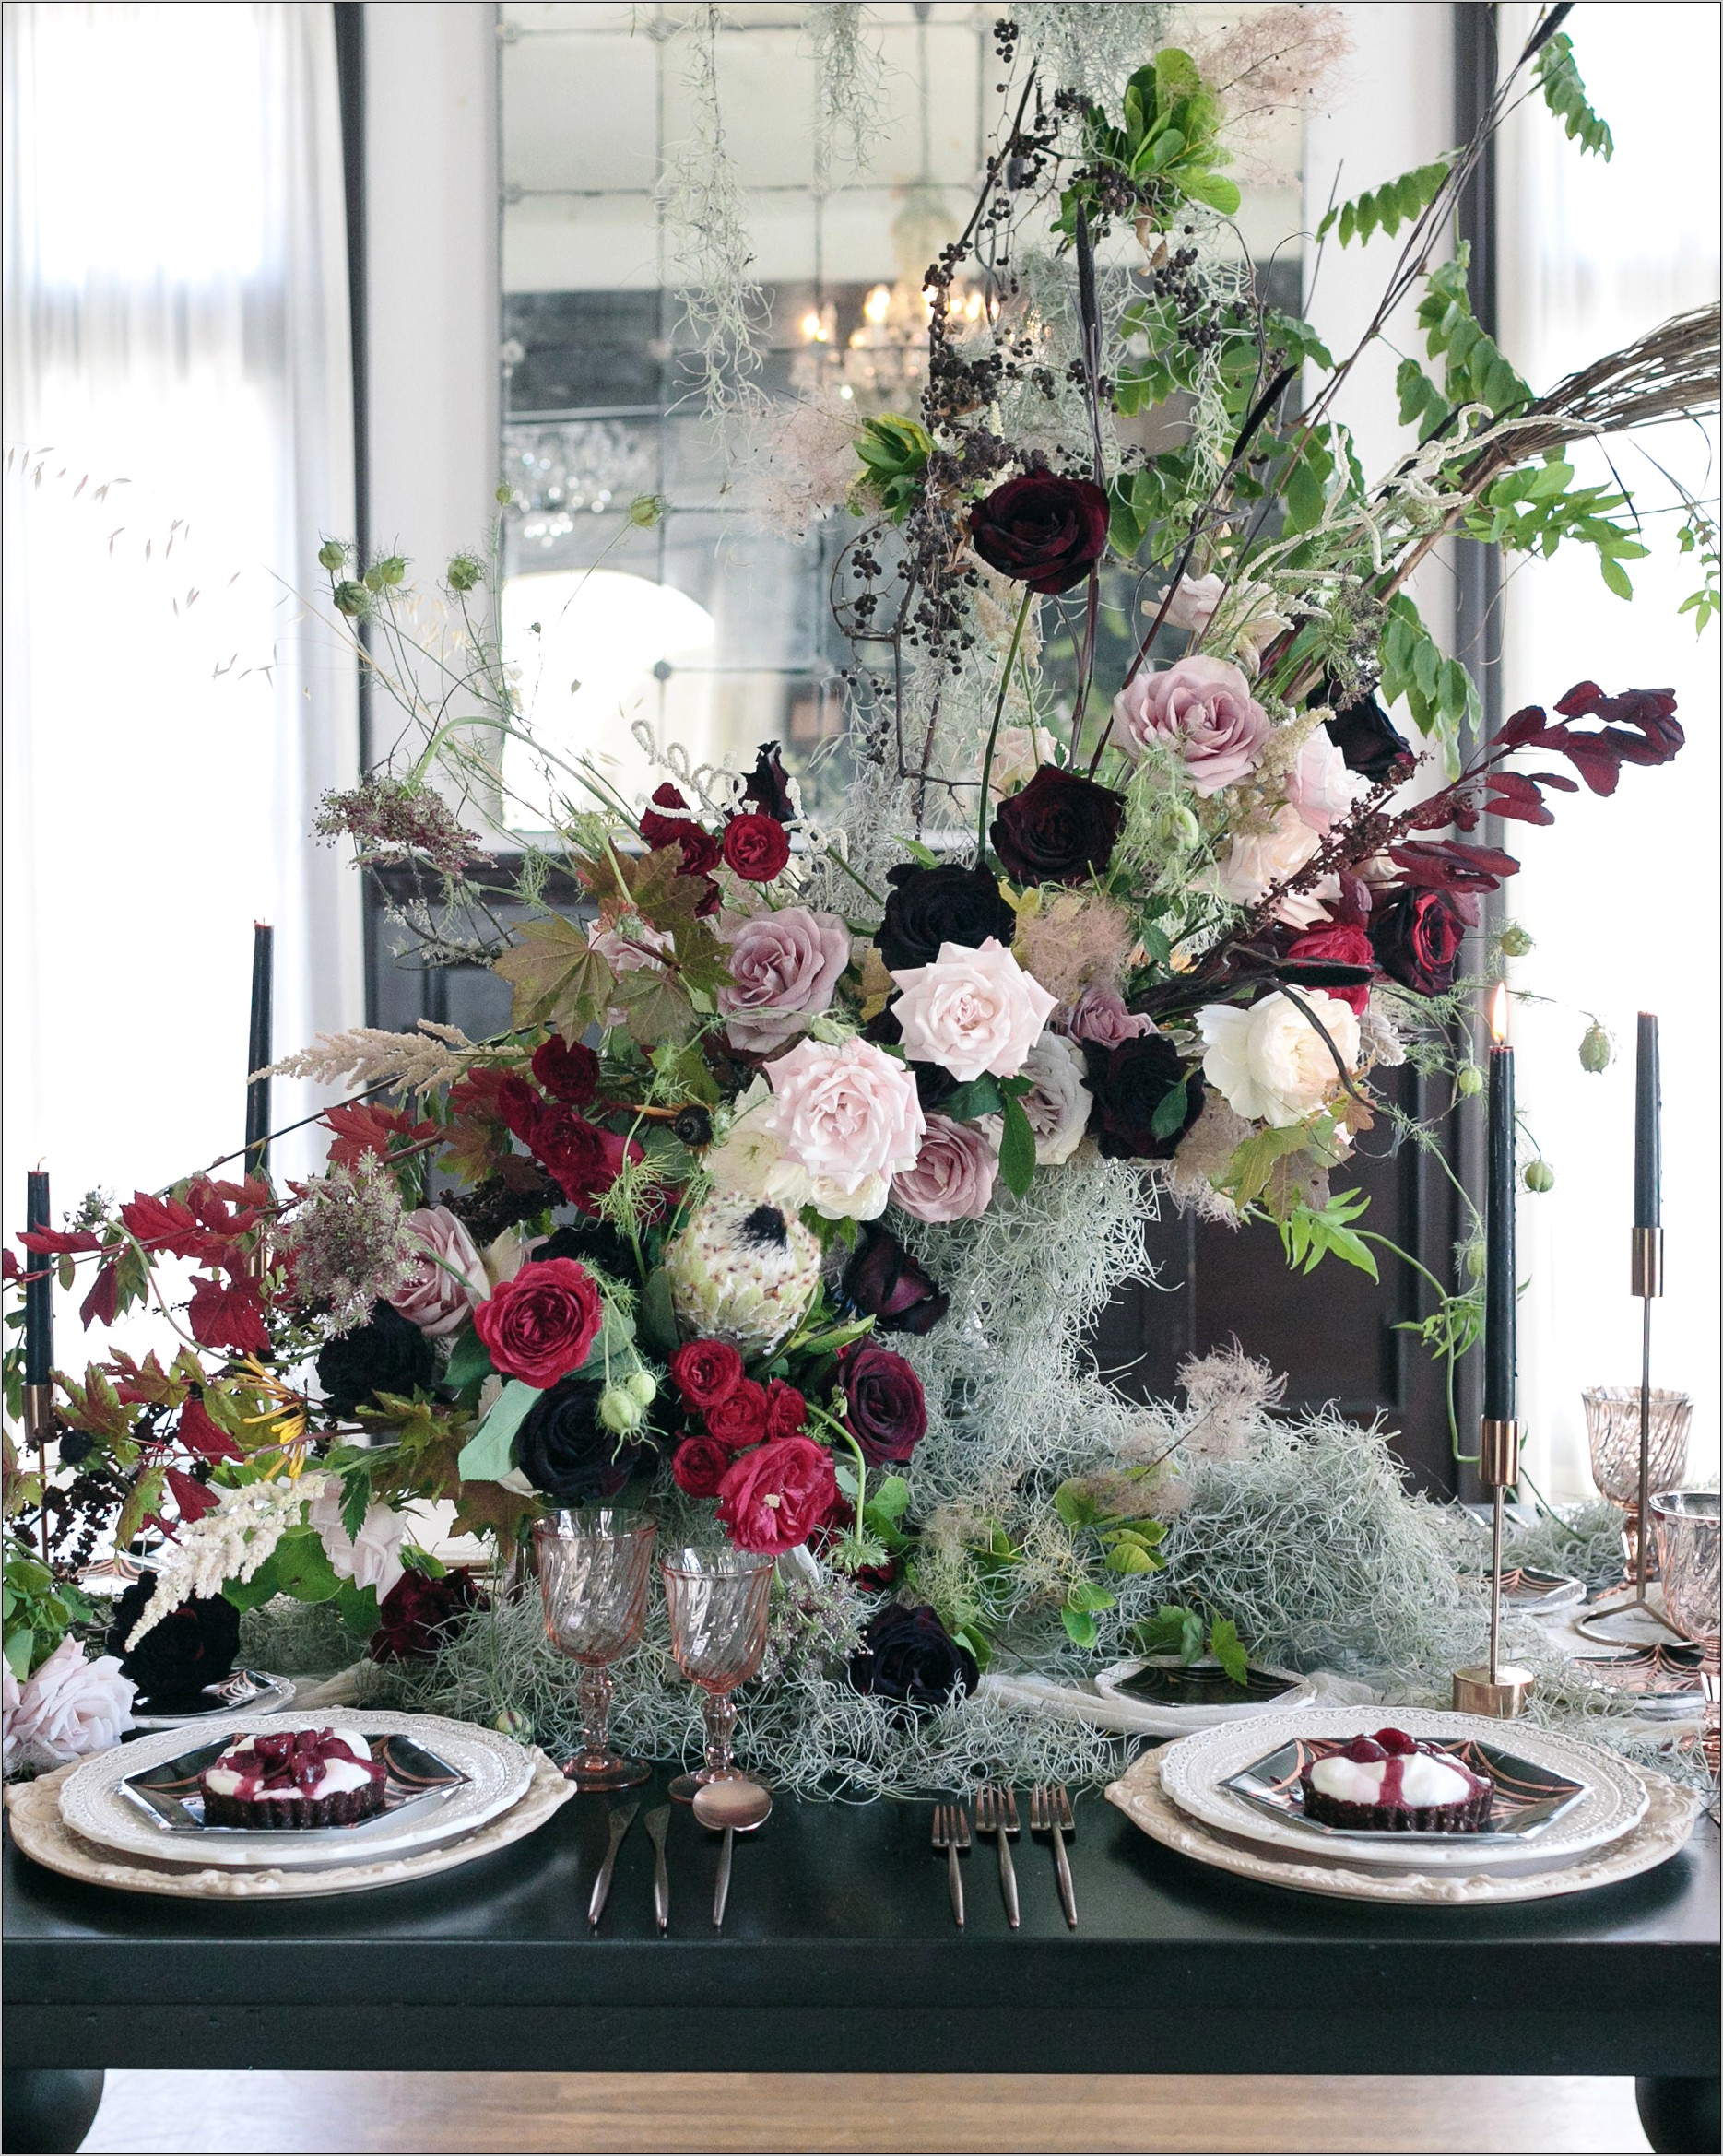 Decorator Florals For Kitchen Table